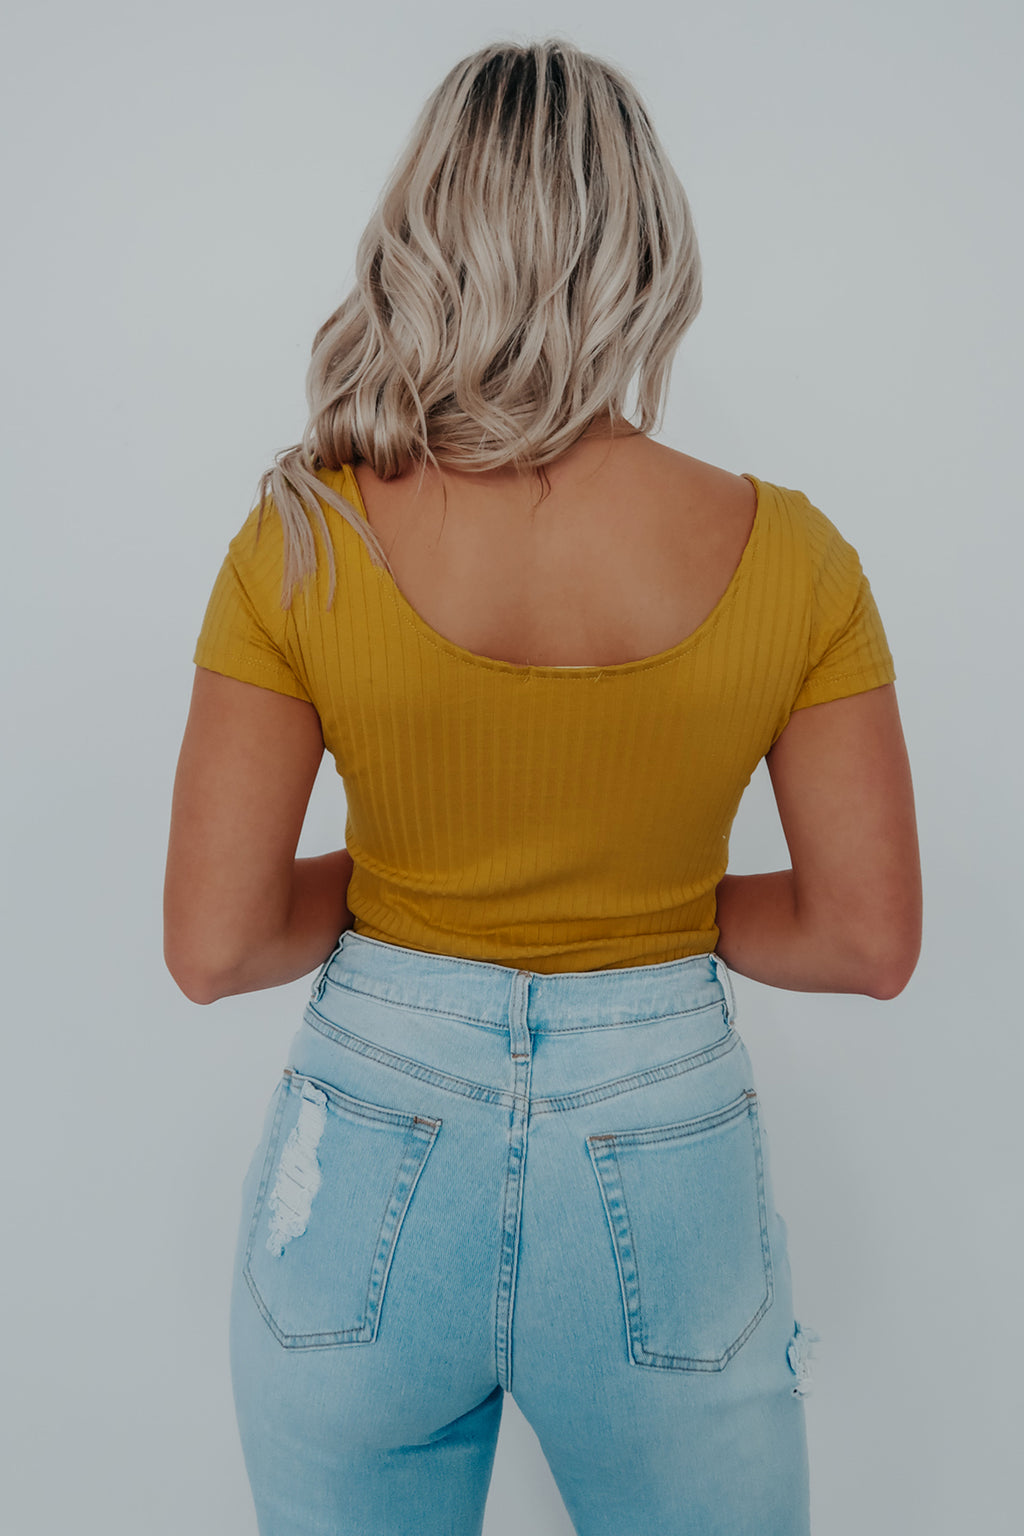 Something Easy Bodysuit: Mustard